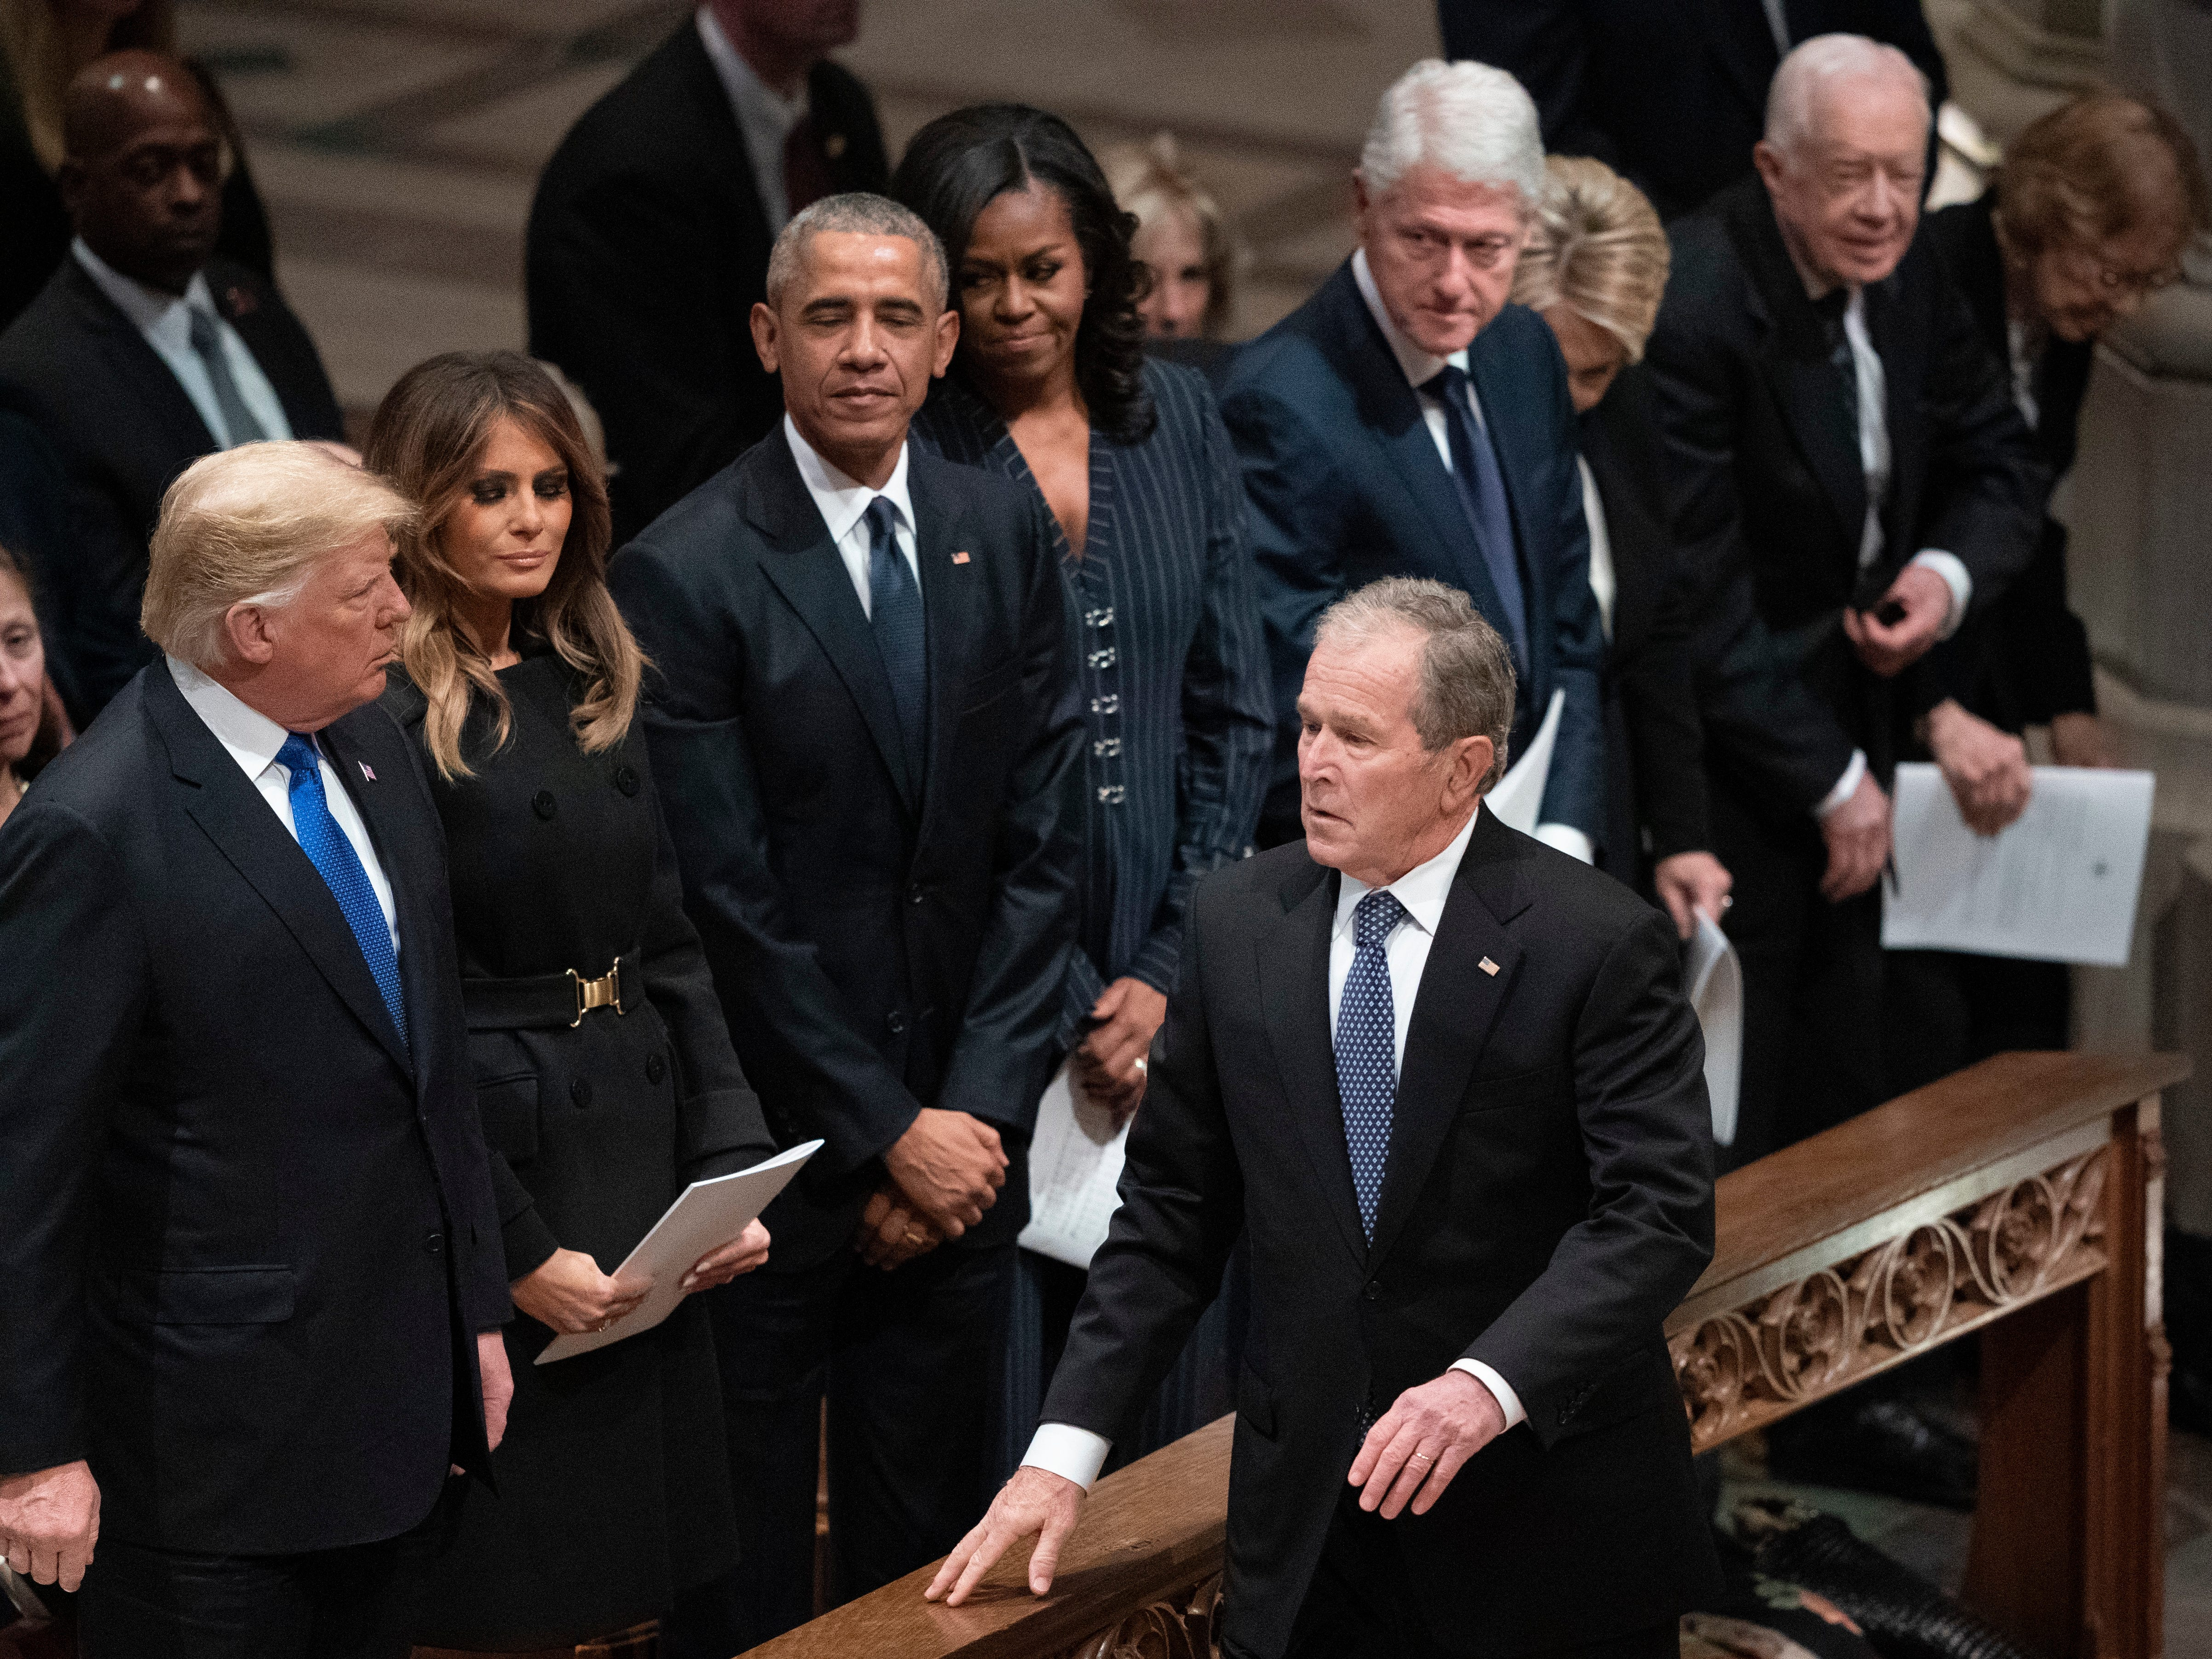 President George W. Bush walks to his seat after greeting President Donald Trump, first lady Melania Trump, former President Barack Obama, Michelle Obama, former President Bill Clinton, former Secretary of State Hillary Clinton, former President Jimmy Carter, and Rosalynn Carter during a State Funeral for former President George H.W. Bush at the National Cathedral,  Dec. 5, 2018, in Washington.